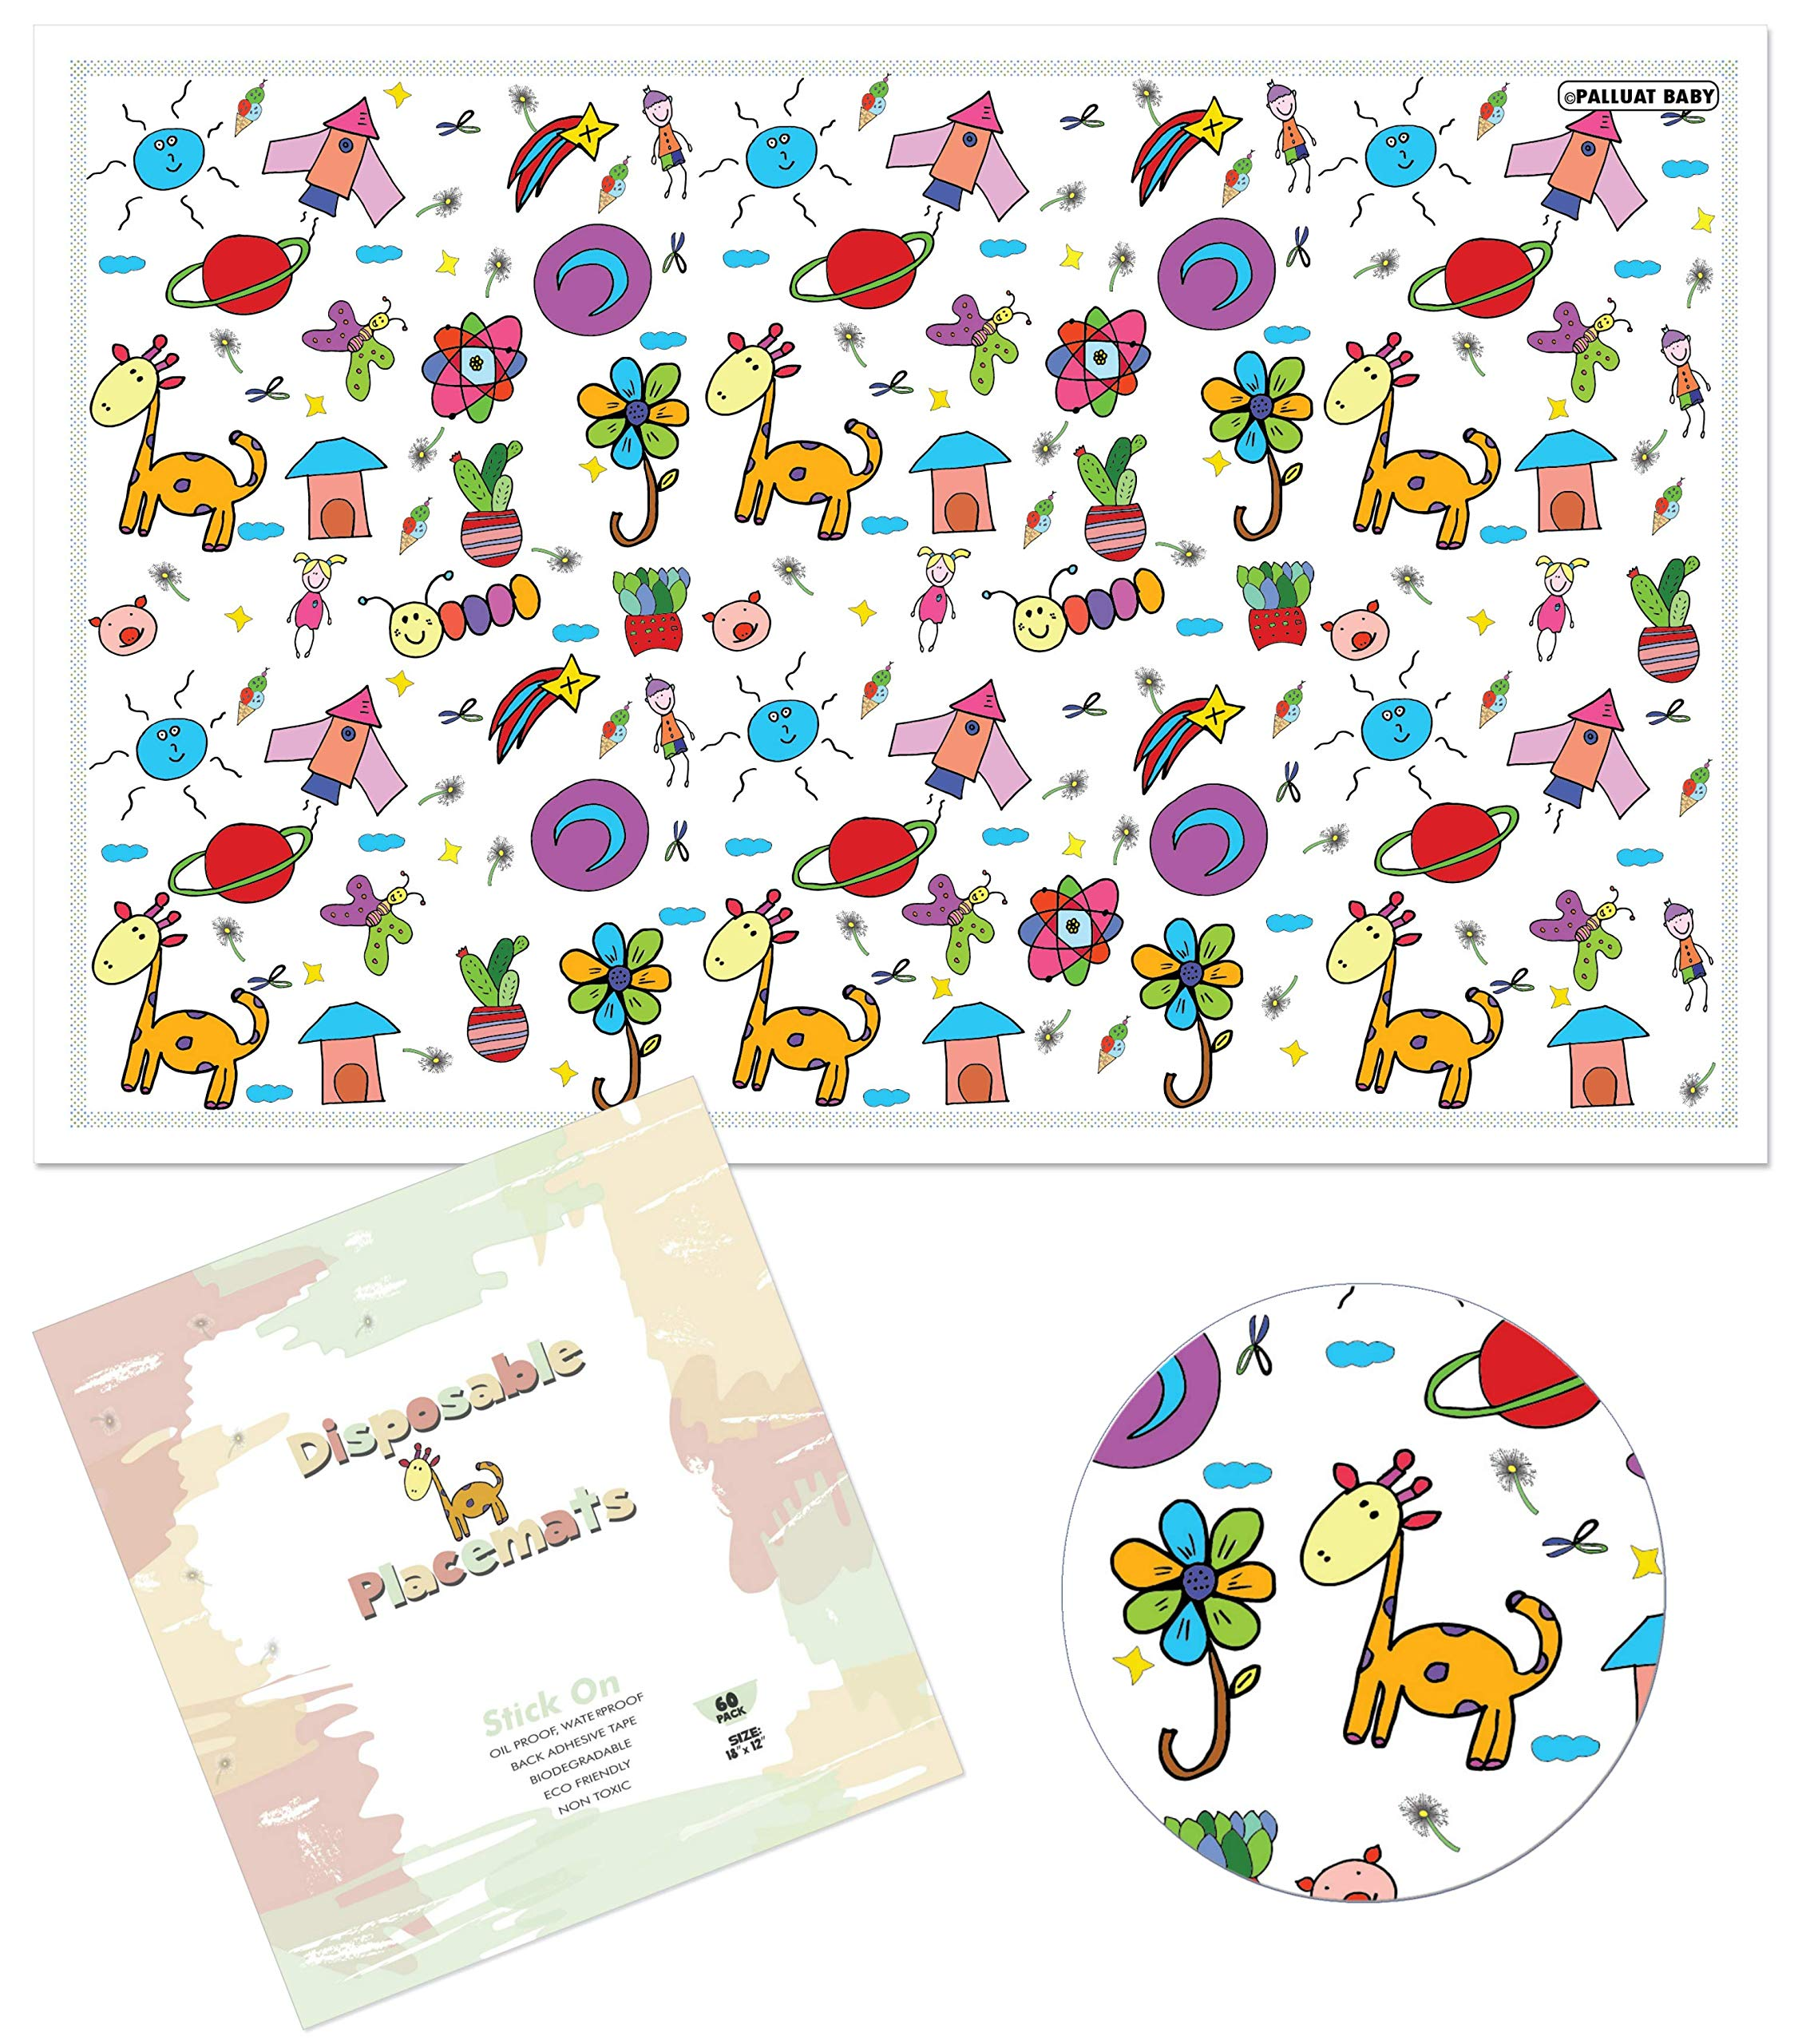 Disposable Placemats For Children Baby Toddlers Kids by Palluat   Extra Sticky Strips, Table Top, Restaurants   Enjoy Meals, No Cleaning - Ecofriendly 18''x12'' - 60 Count Individually Folded